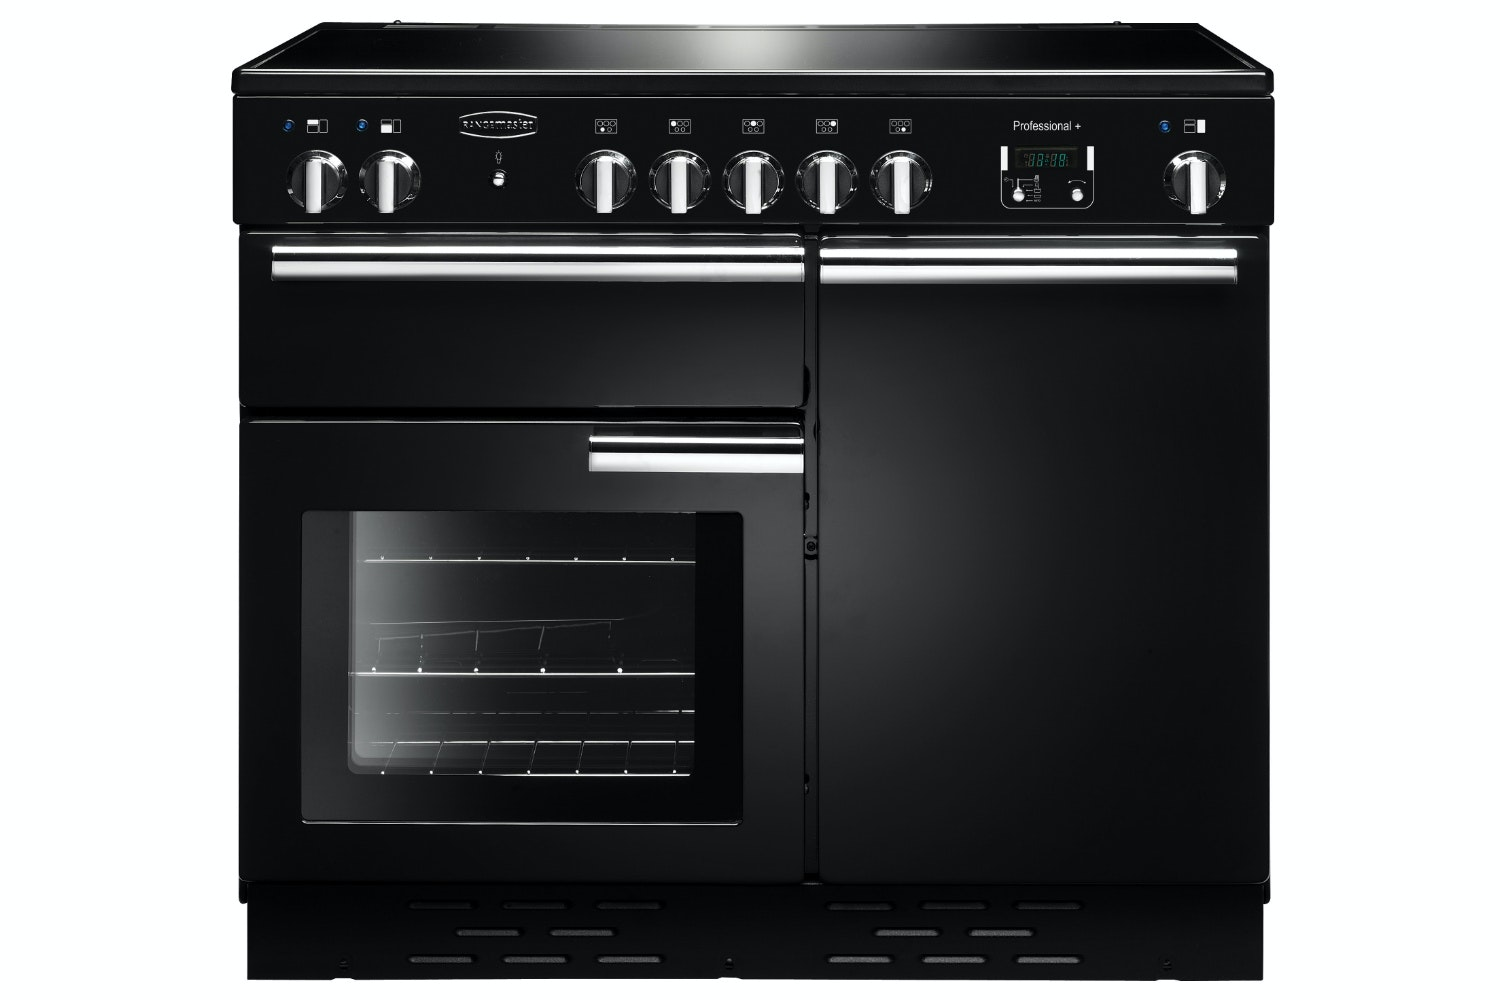 Rangemaster Pro Plus 100cm Electric Range Cooker | PROP100EIGB/C | Black